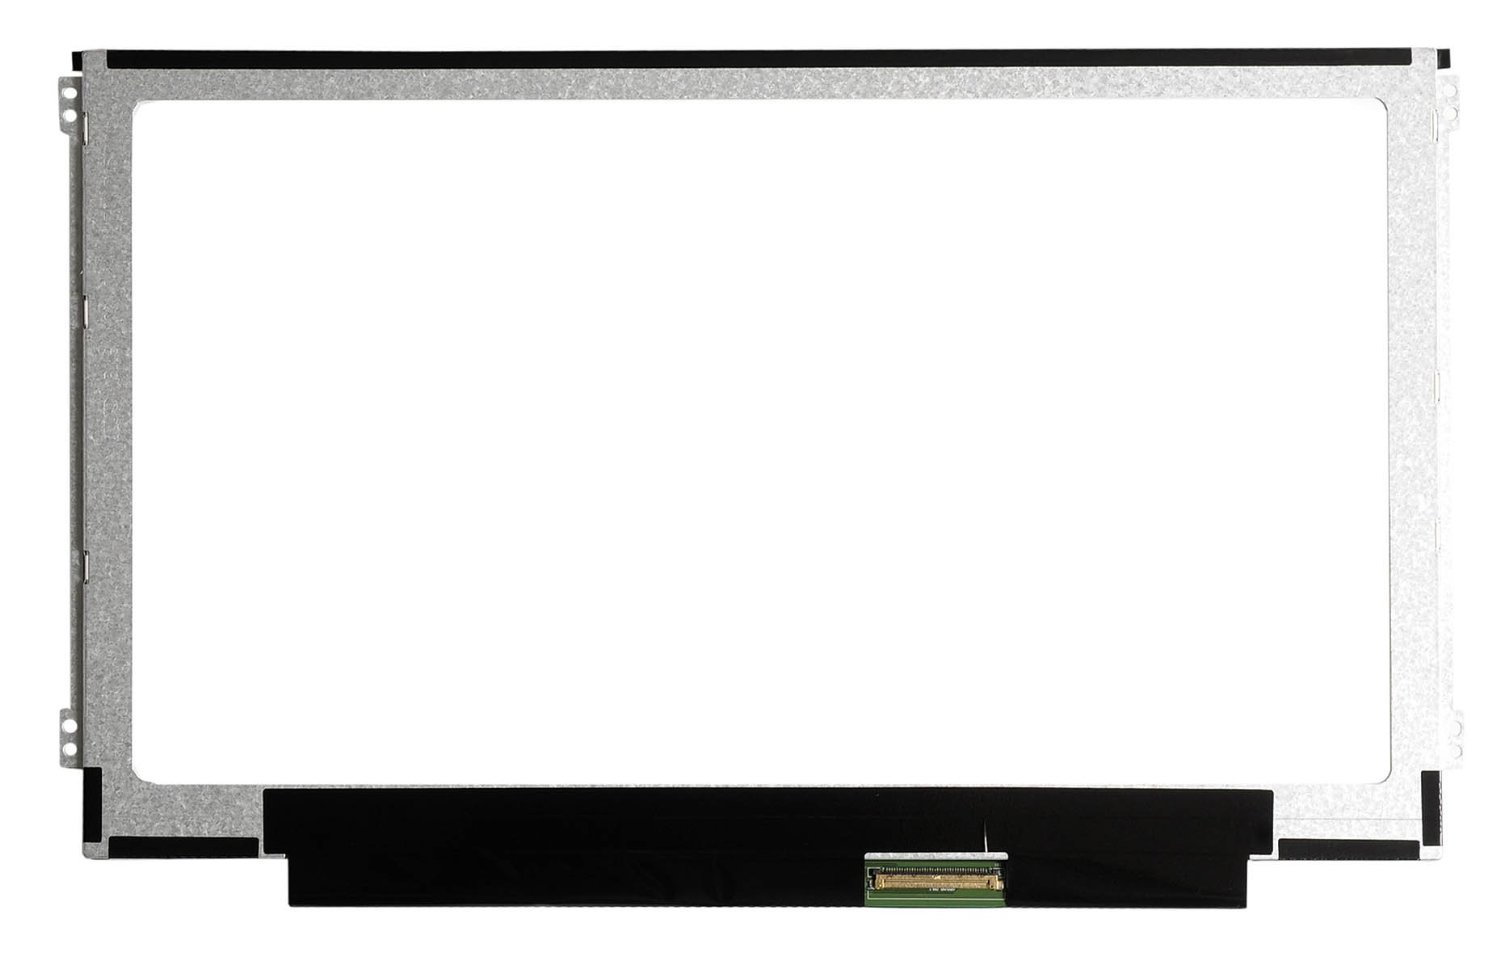 New For Samsung Chromebook 303C 11.6 WXGA HD LED LCD Replacement Screen , Chrome Book XE303C12-A01US